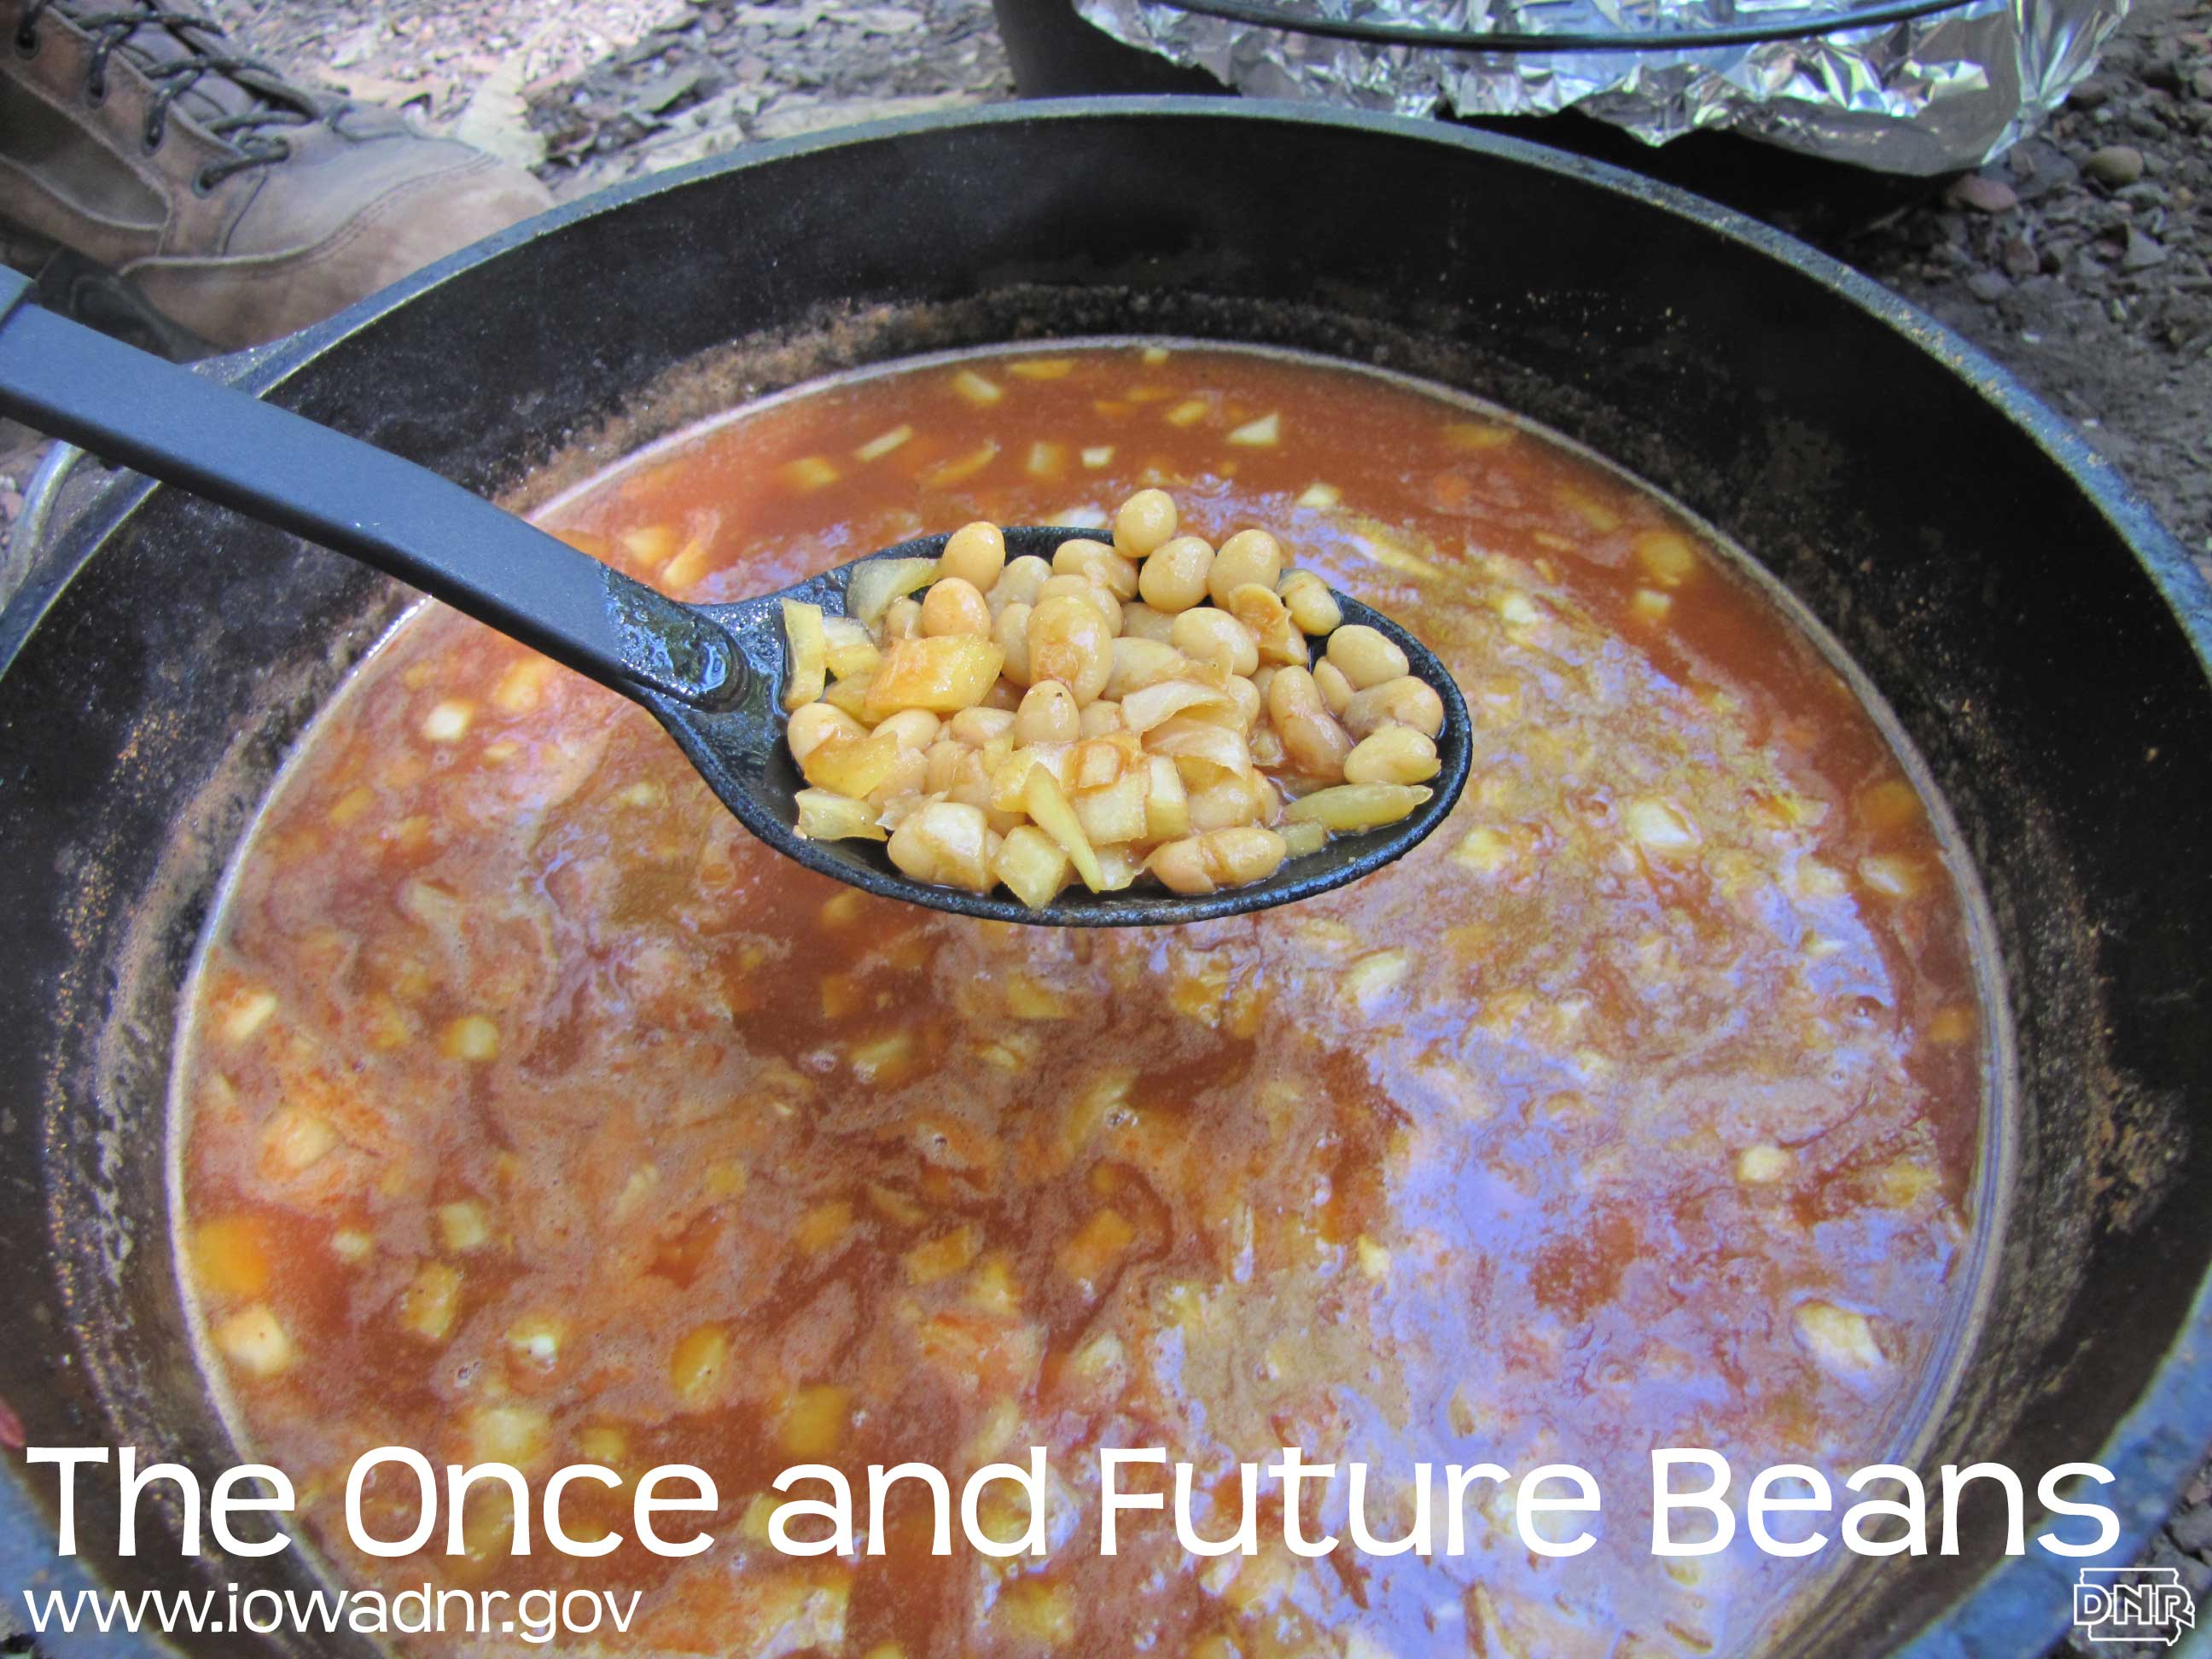 Dutch oven recipes from the Iowa DNR: The Once and Future Beans